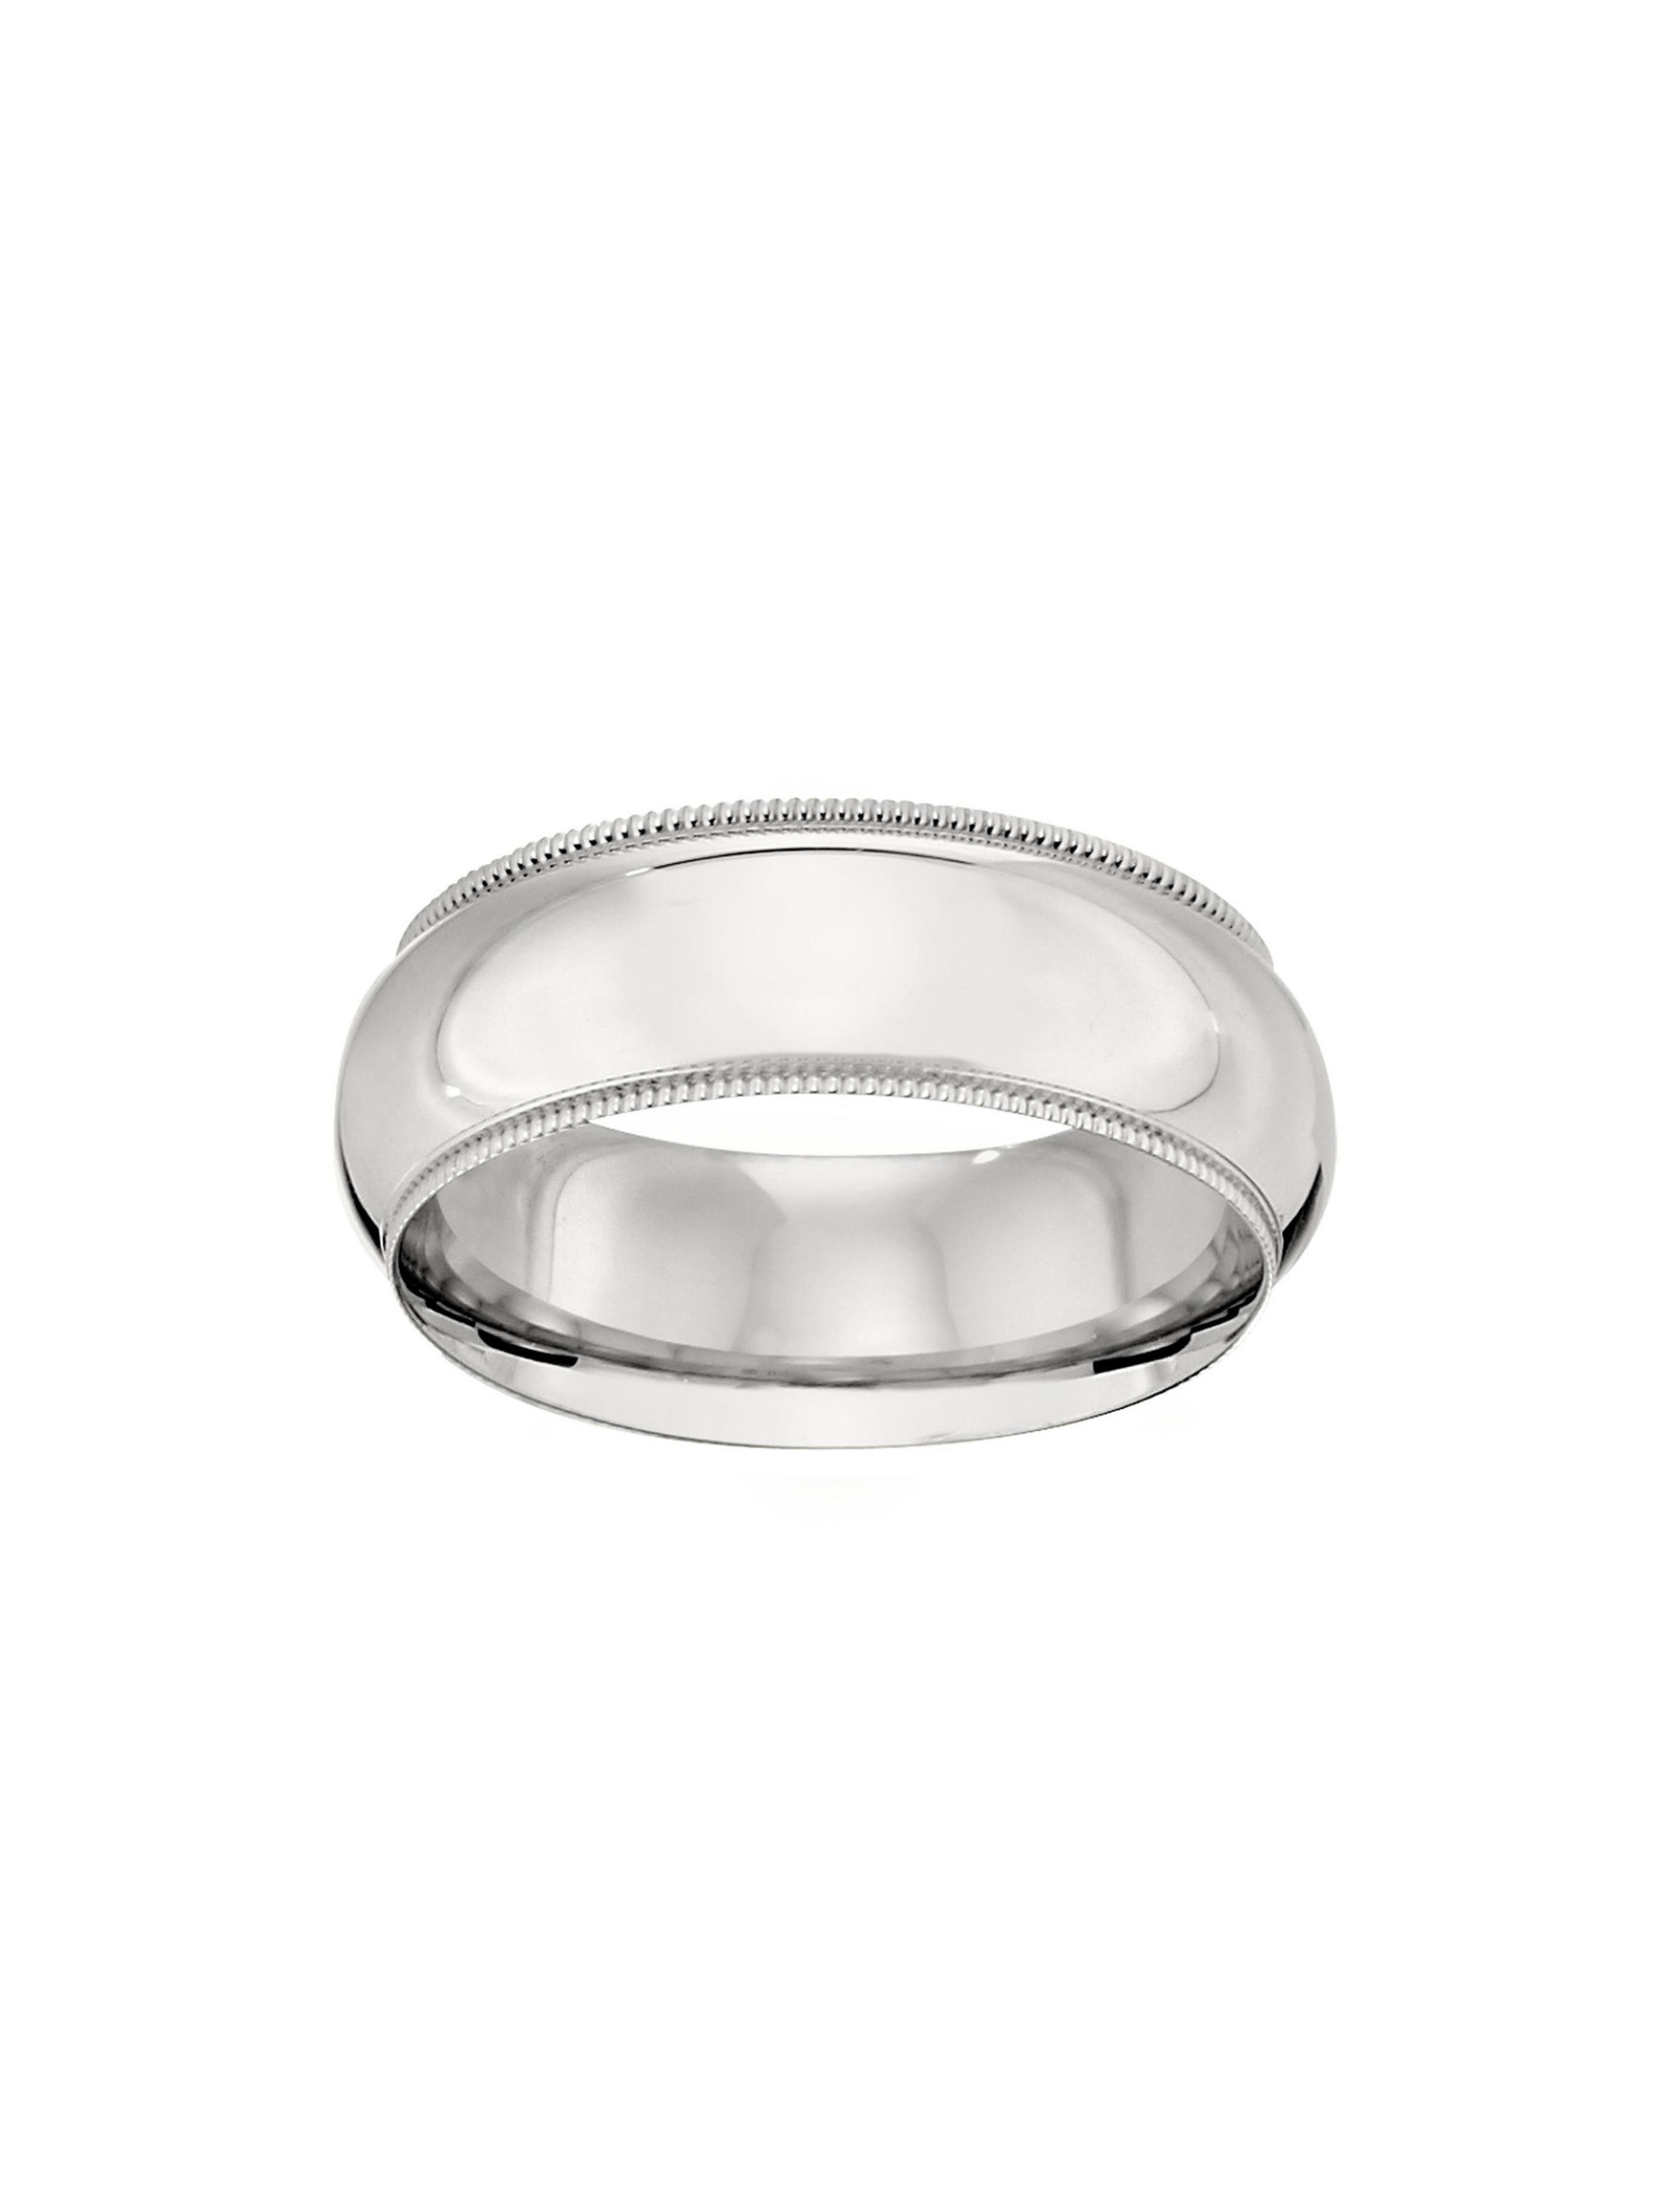 Dilusso Jewelers White Gold Rings Fine Jewelry